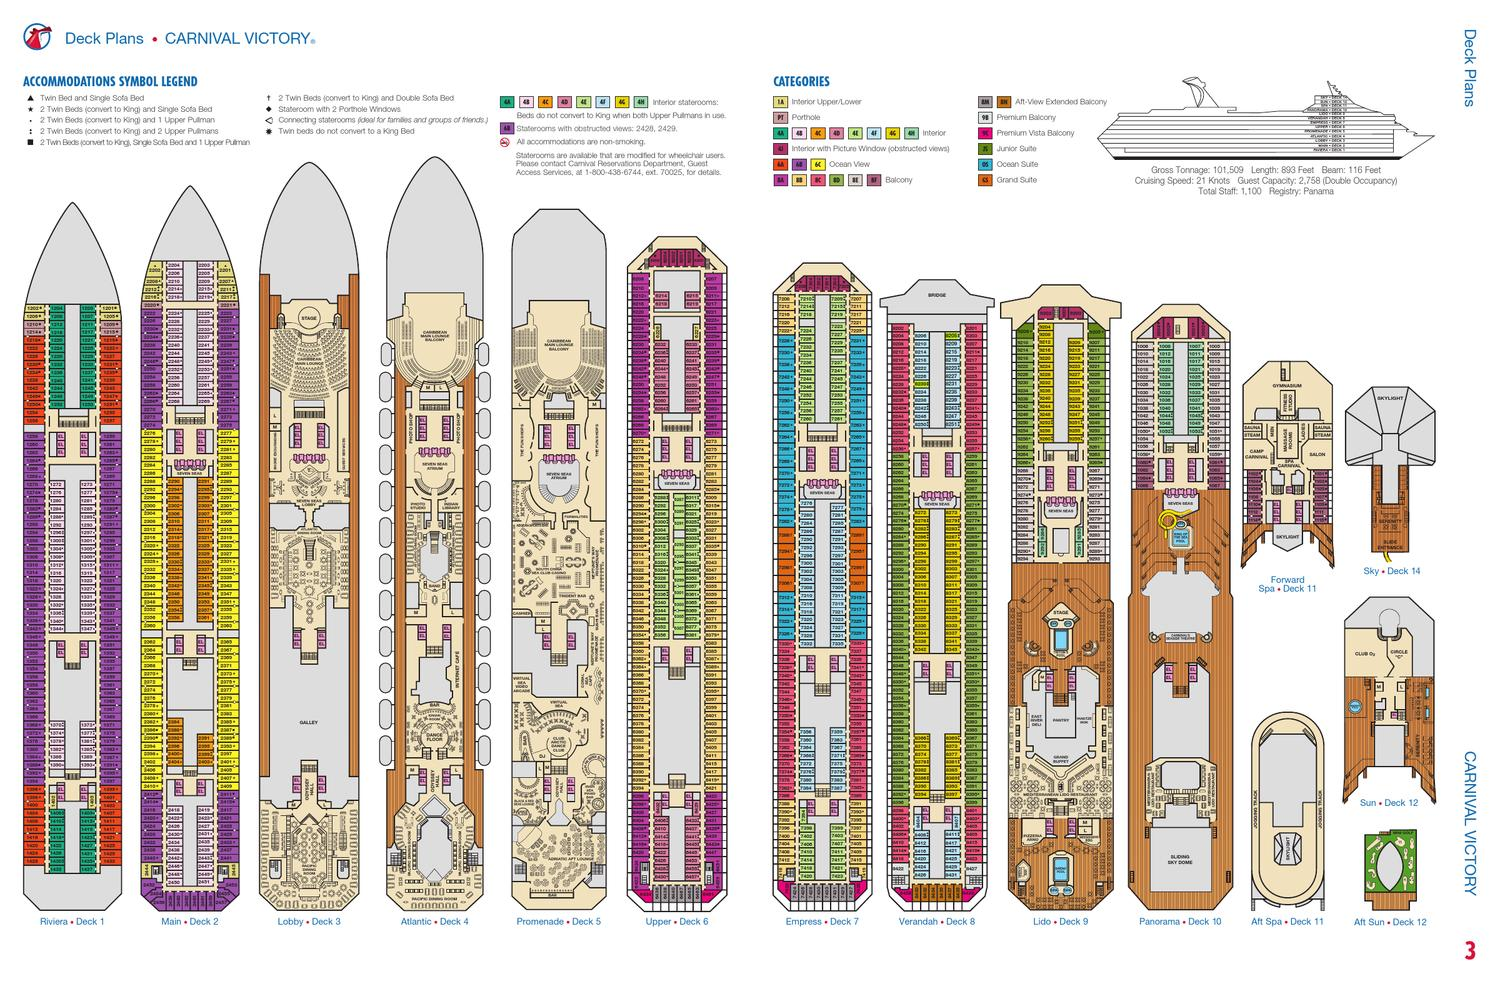 Deck plan for carnival victory by nkotb cruise 2013 issuu jameslax Gallery